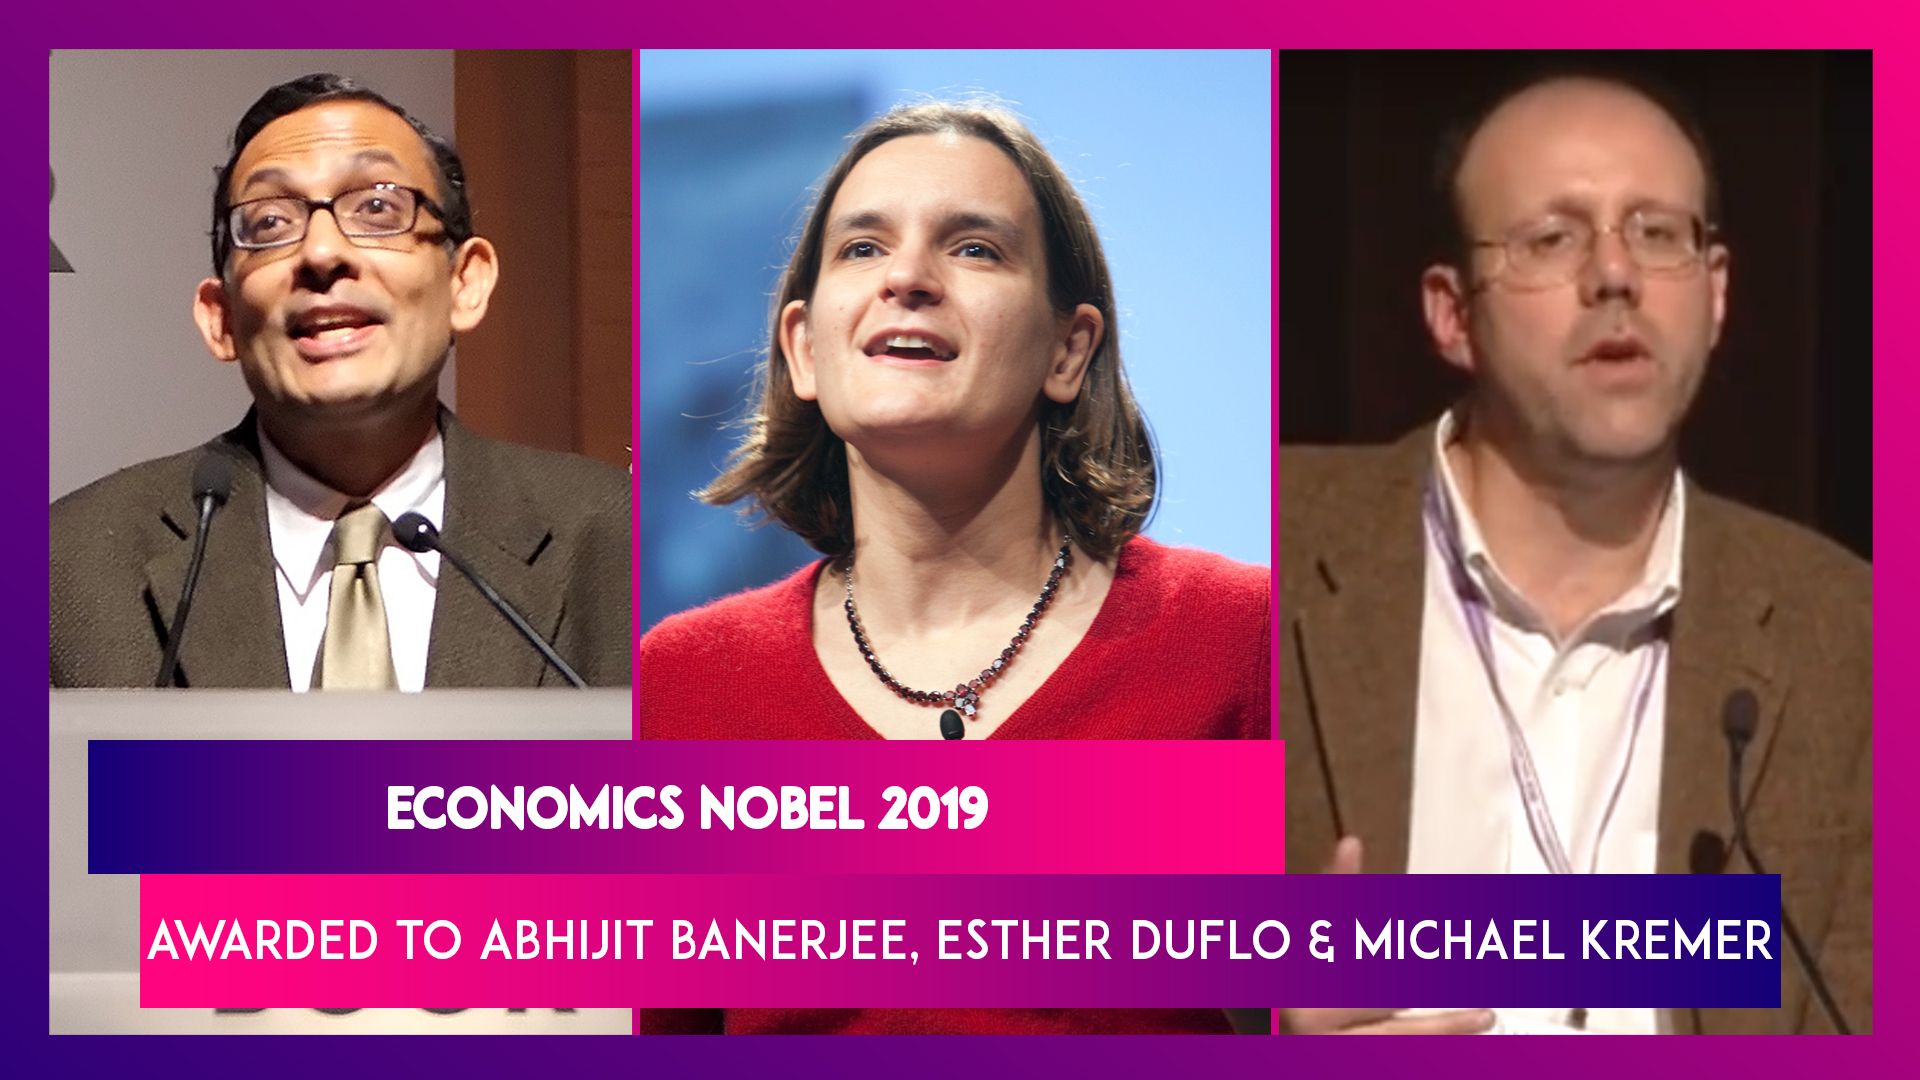 Nobel Prize for Economic Sciences 2019 Awarded to Abhijit Banerjee, Esther Duflo and Michael Kremer